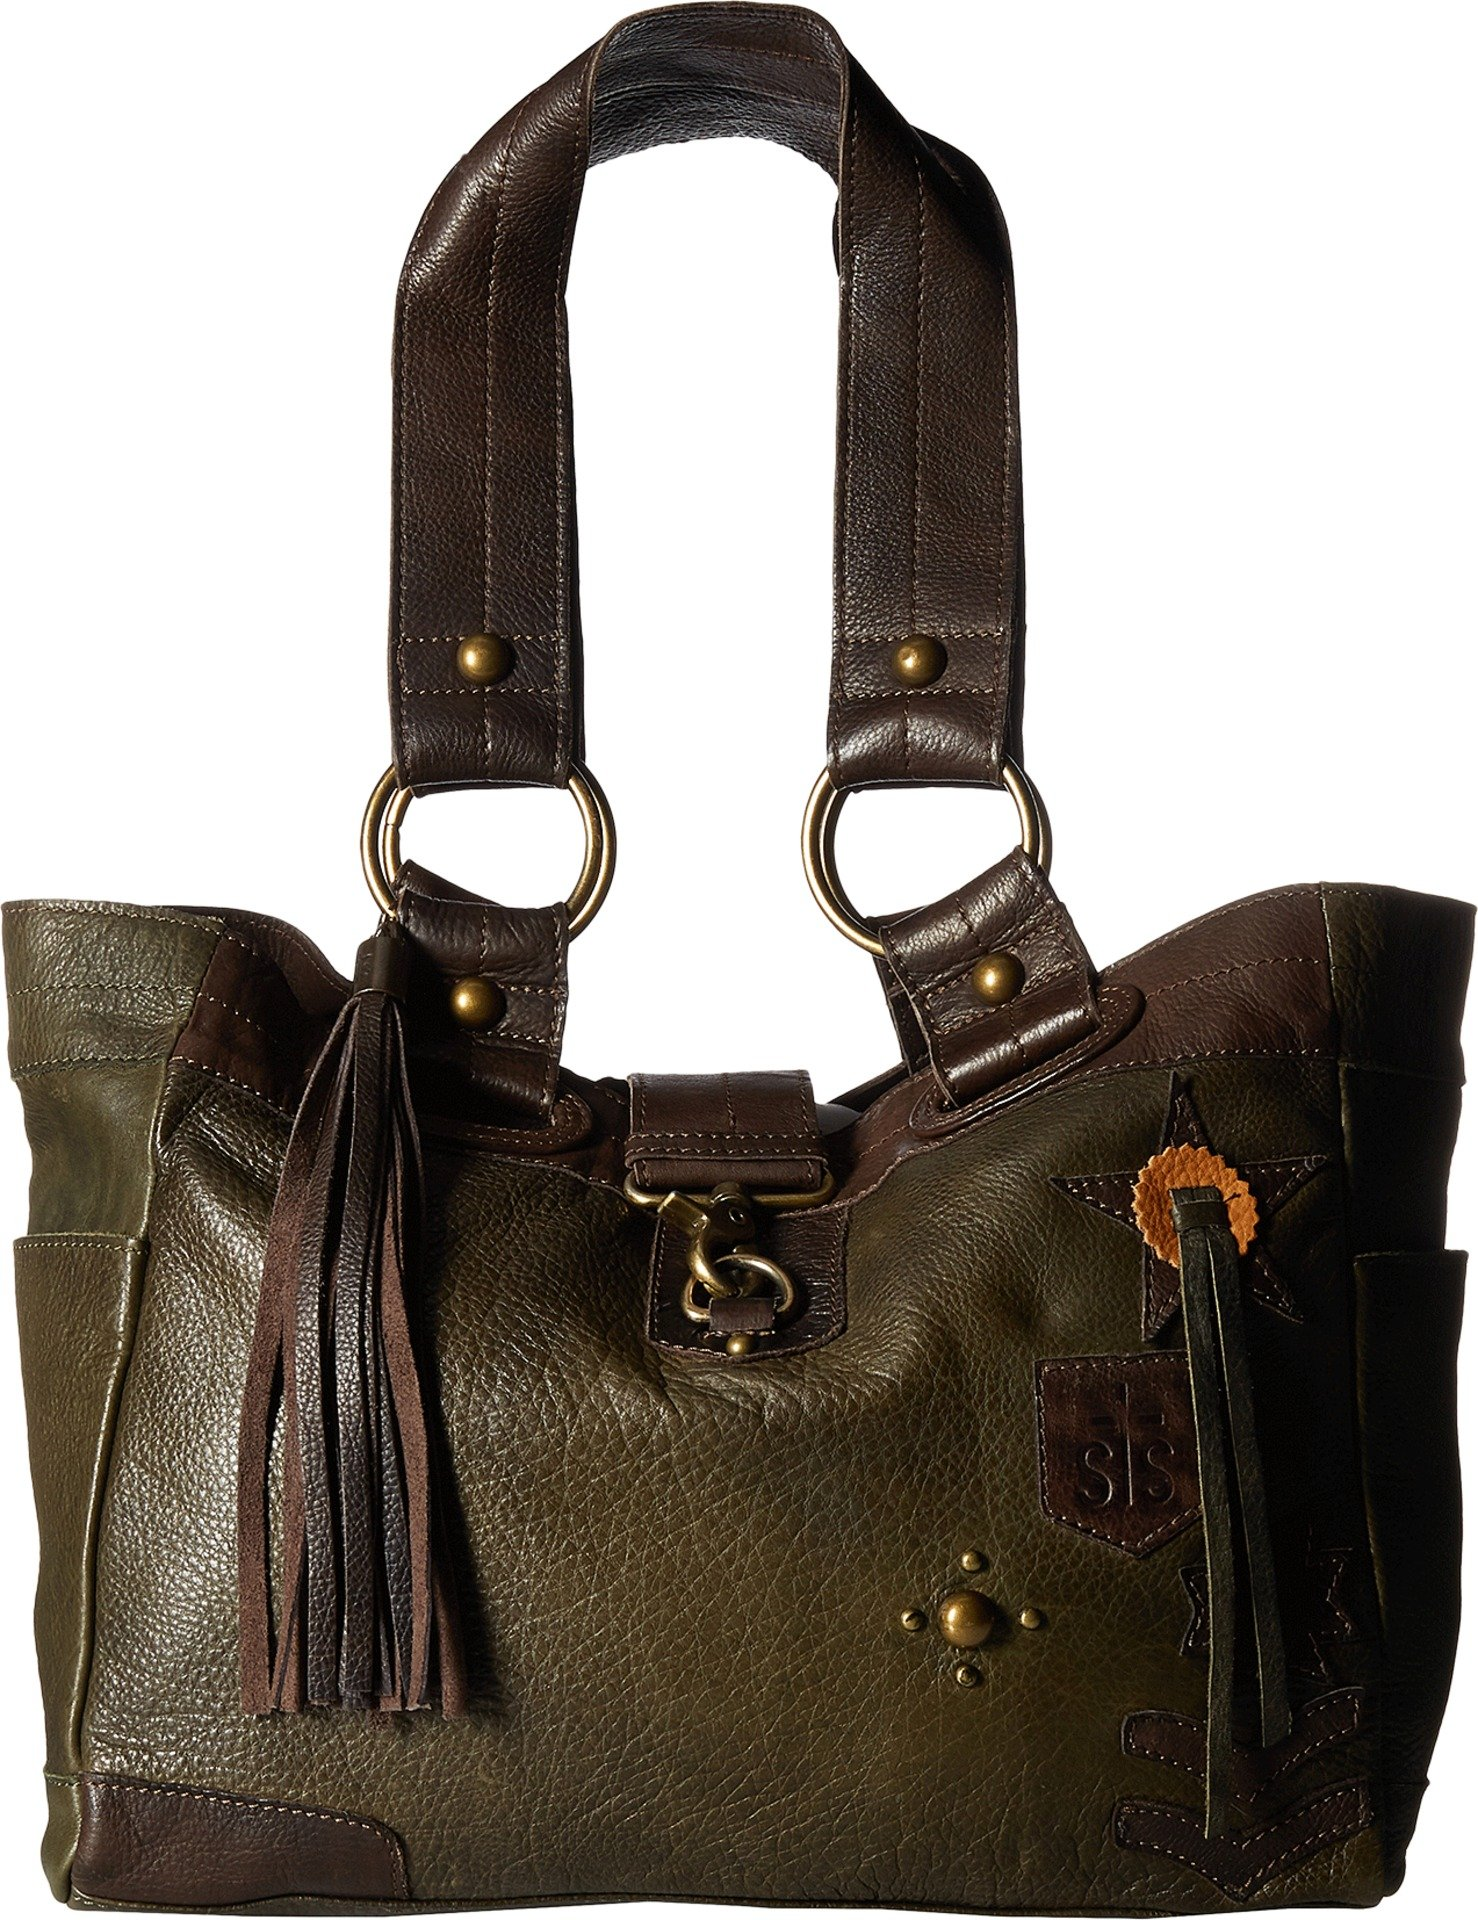 STS Ranchwear Women's General Tote Urban Olive One Size